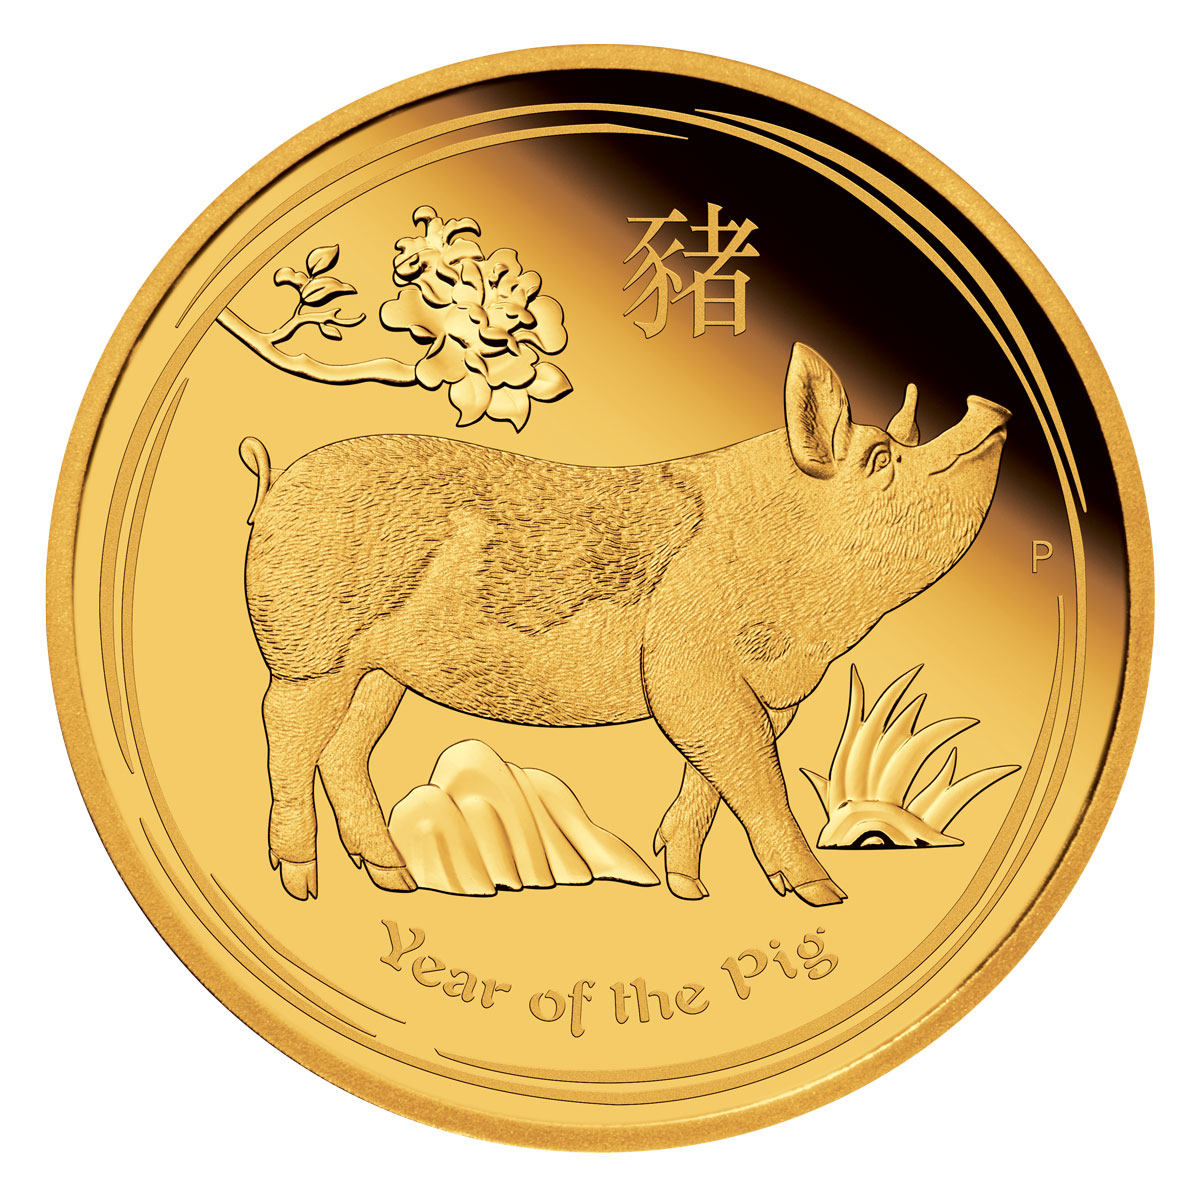 2019 Australia Year of the Pig 1/10 oz Gold Lunar (Series 2) Proof $15 Coin GEM Proof